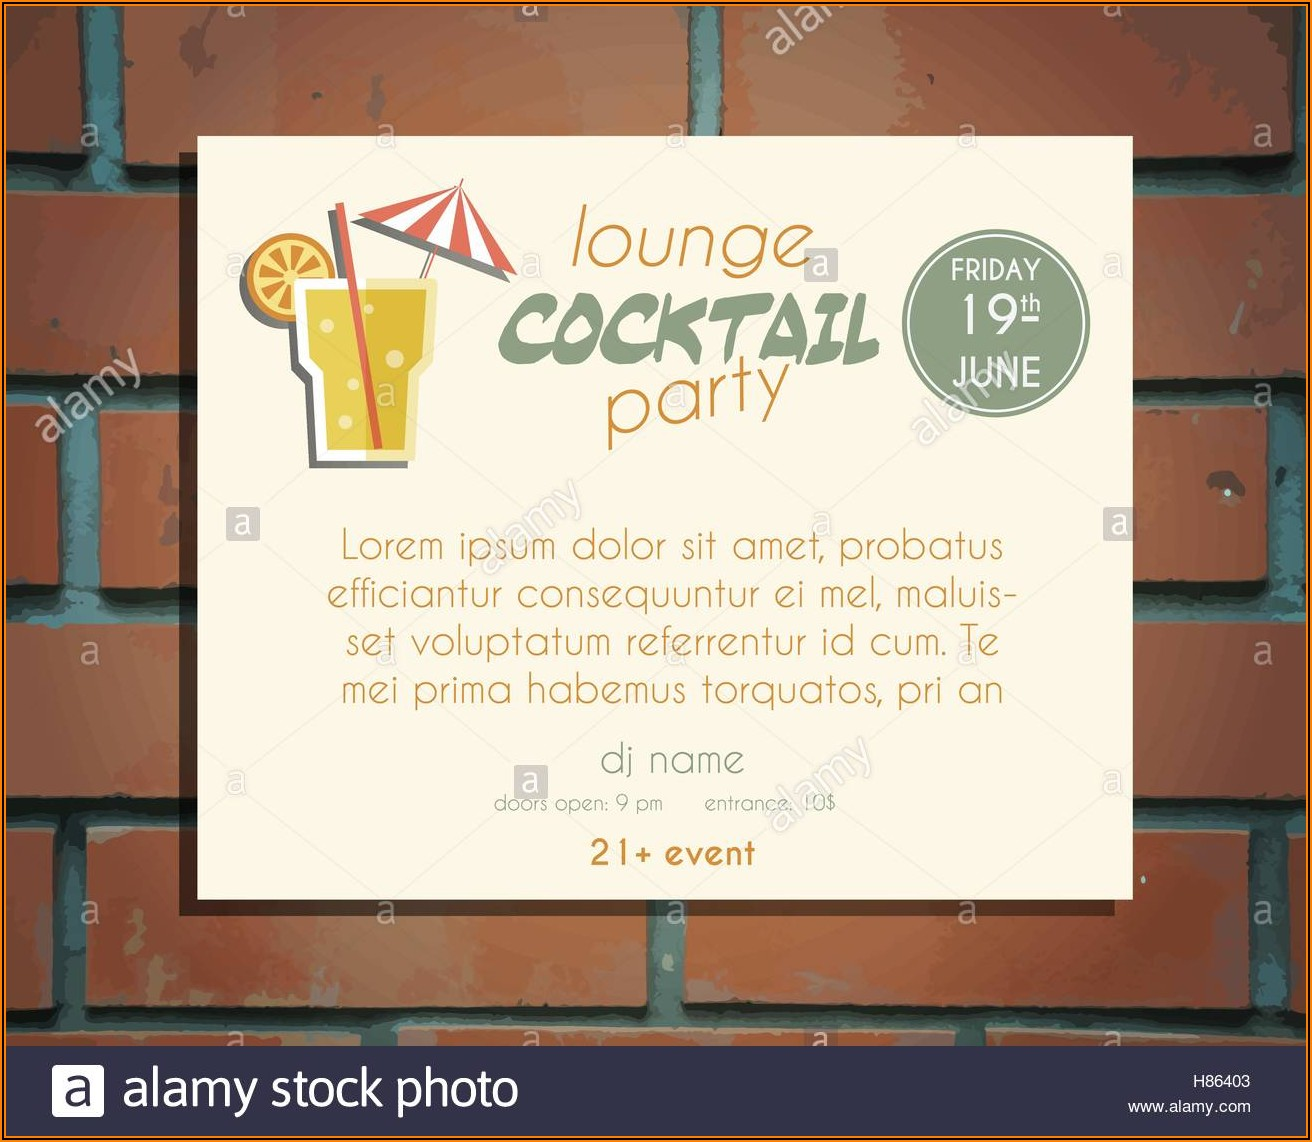 Cocktail Party Invitation Template Vector